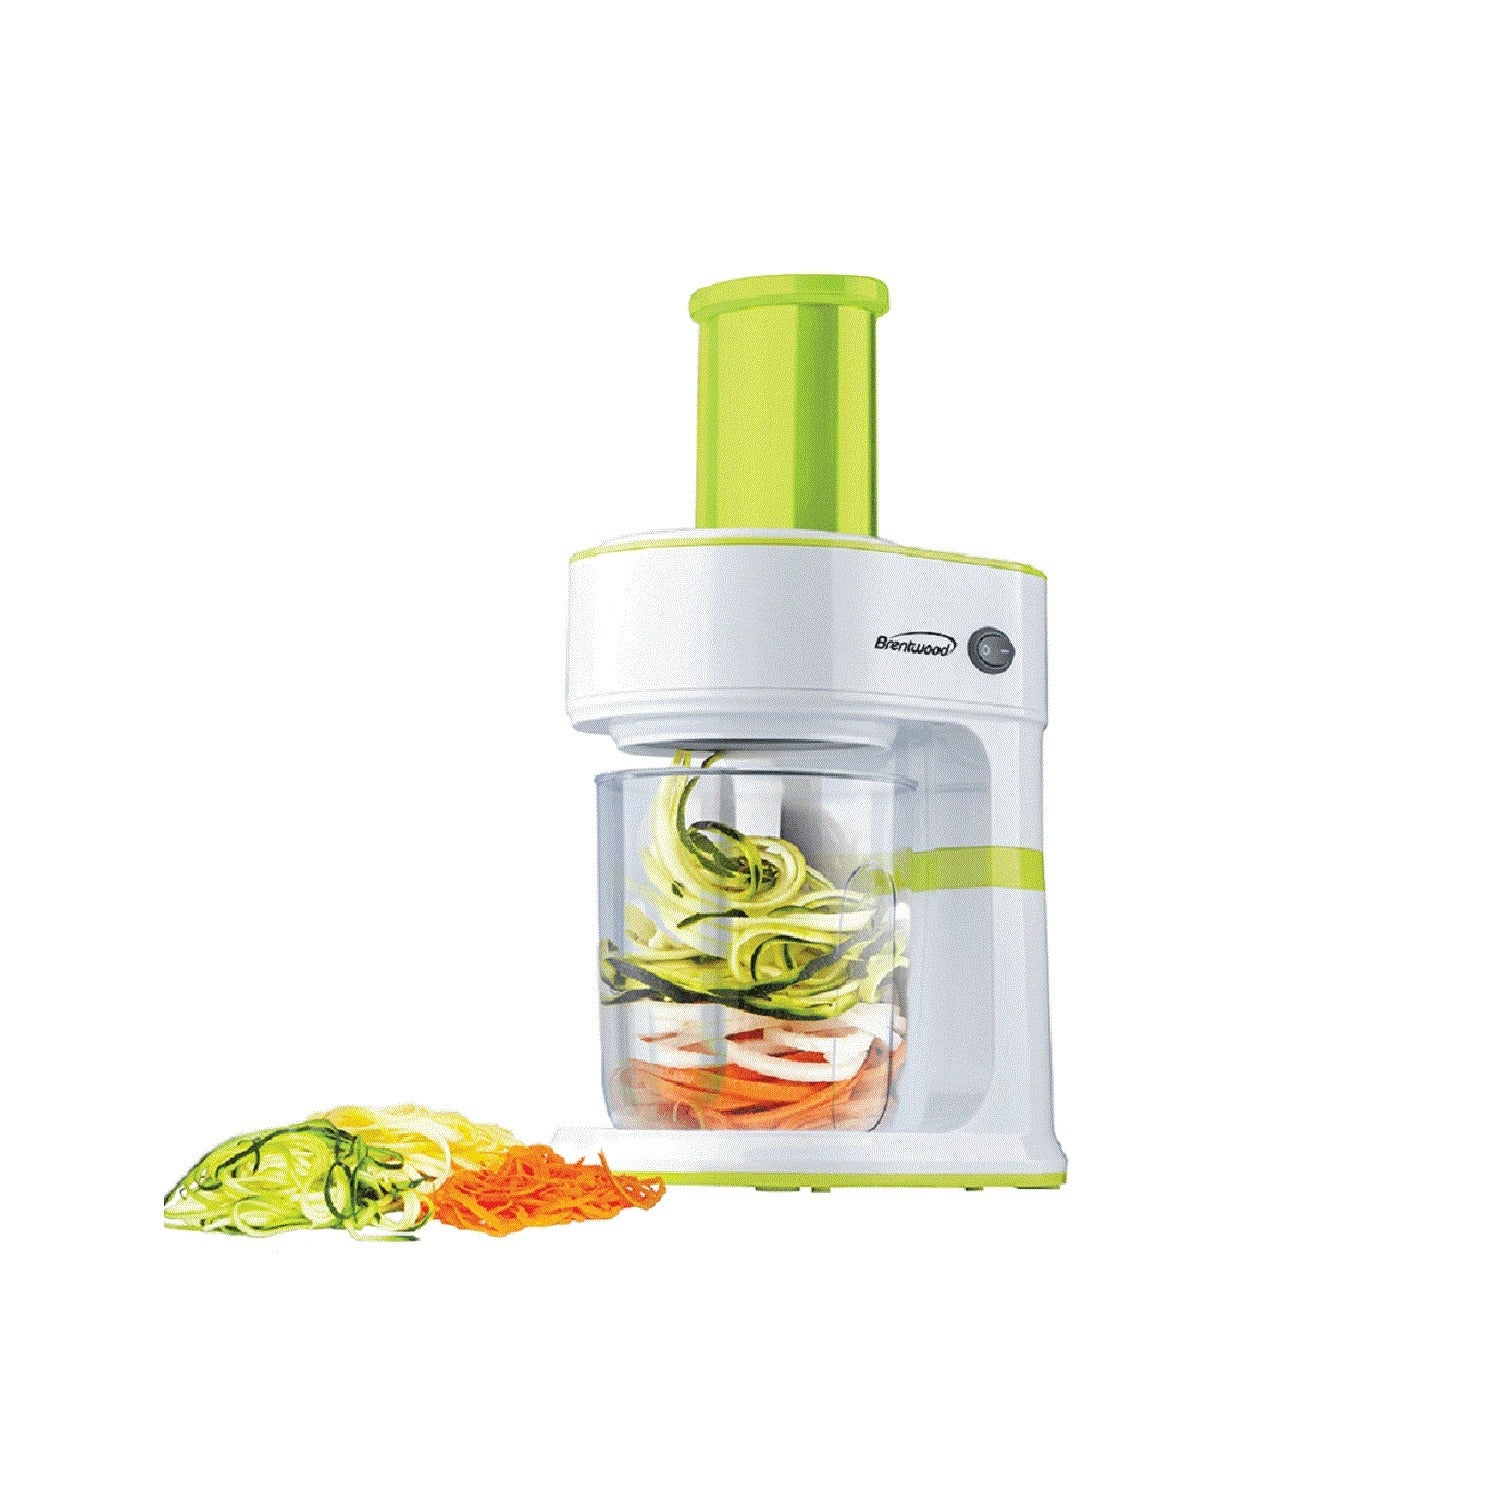 Brentwood 5 Cup Electric Vegetable Spiralizer And Slicer On Sale Overstock 20192575